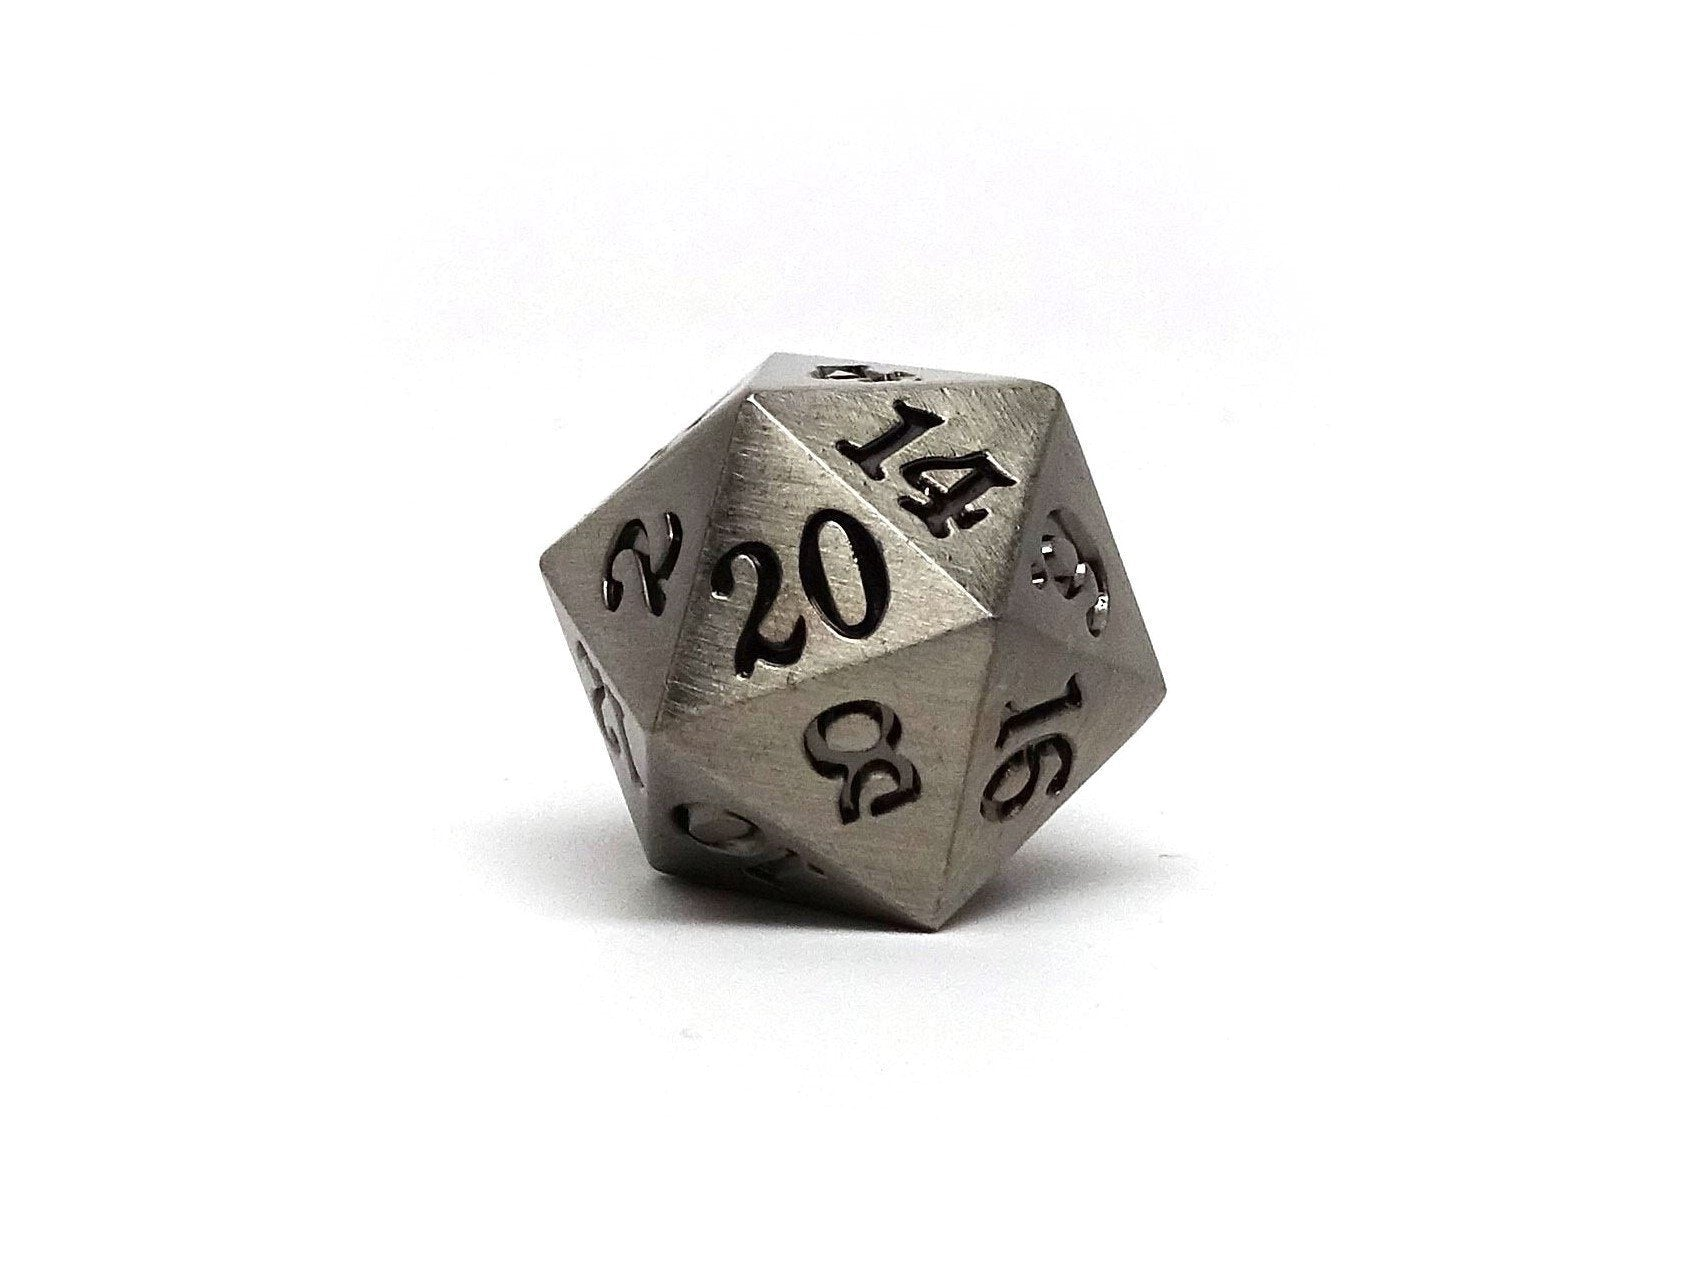 Legendary Silver D20 Dice - Metal Single 20 Sided Dice